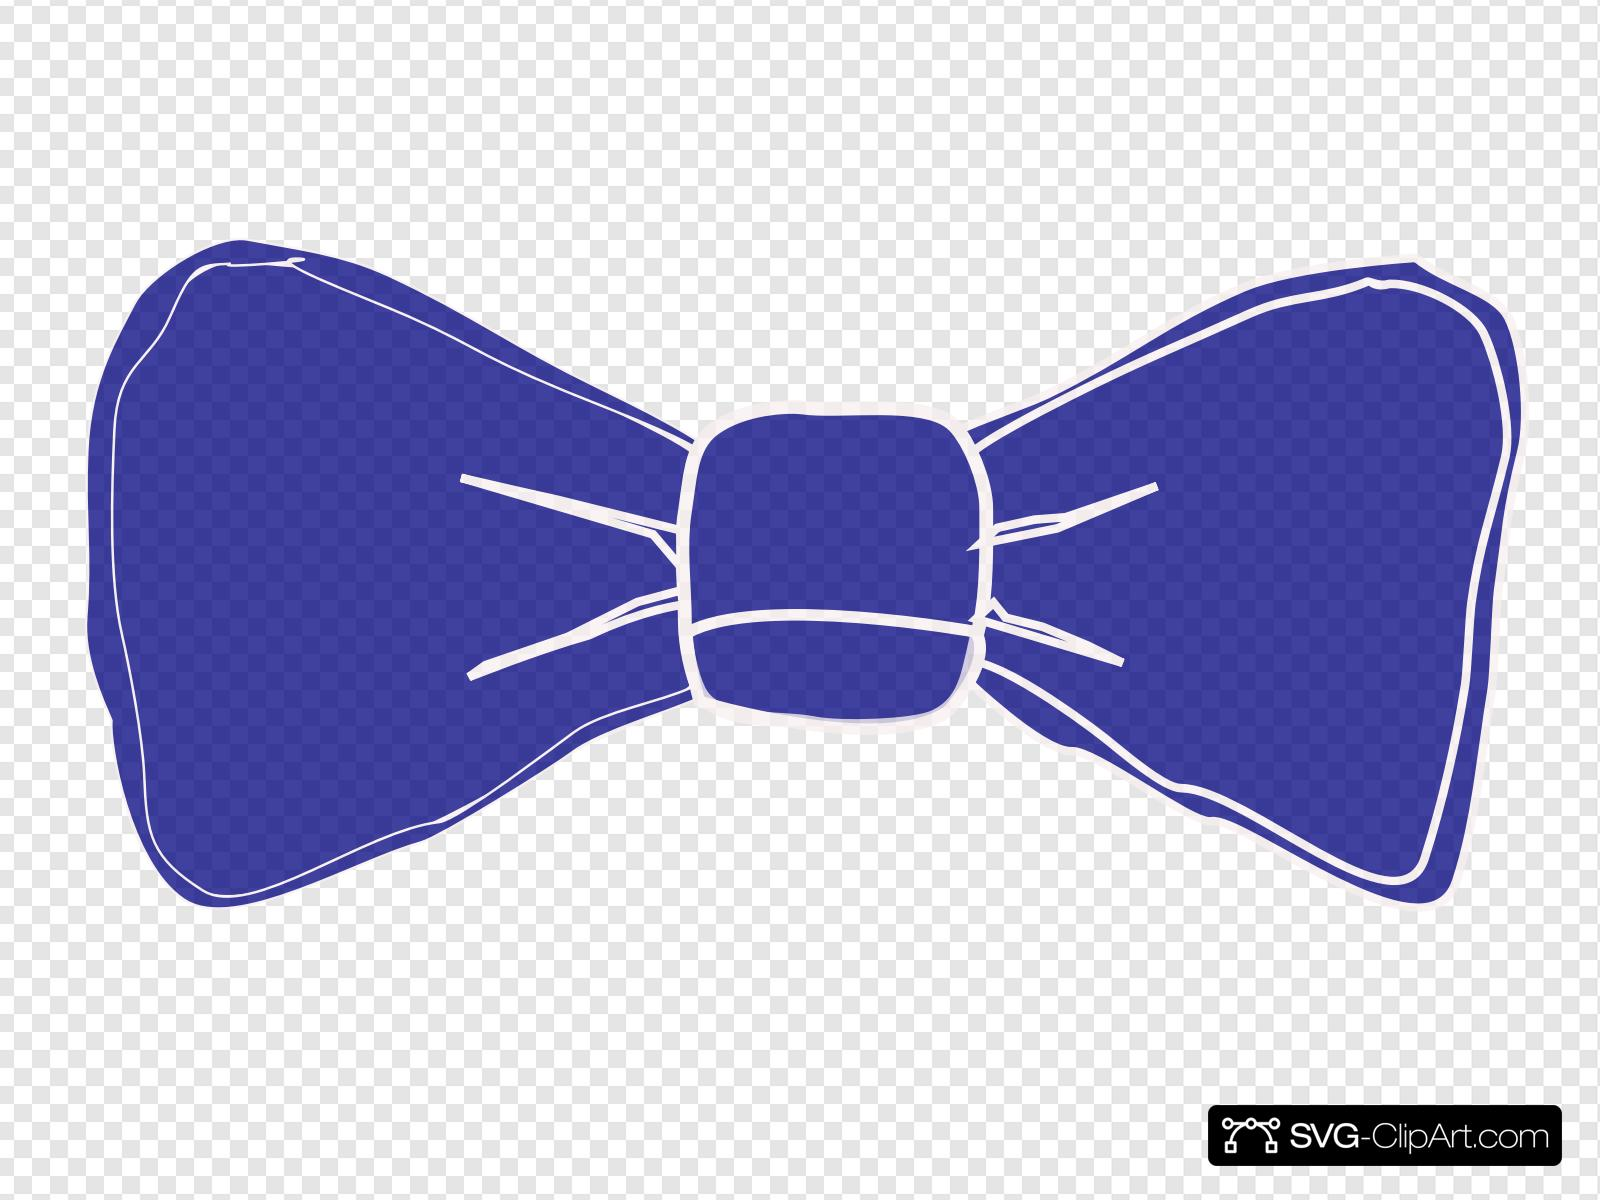 Perriwinkle clipart clip transparent library Bowtie Periwinkle Clip art, Icon and SVG - SVG Clipart clip transparent library